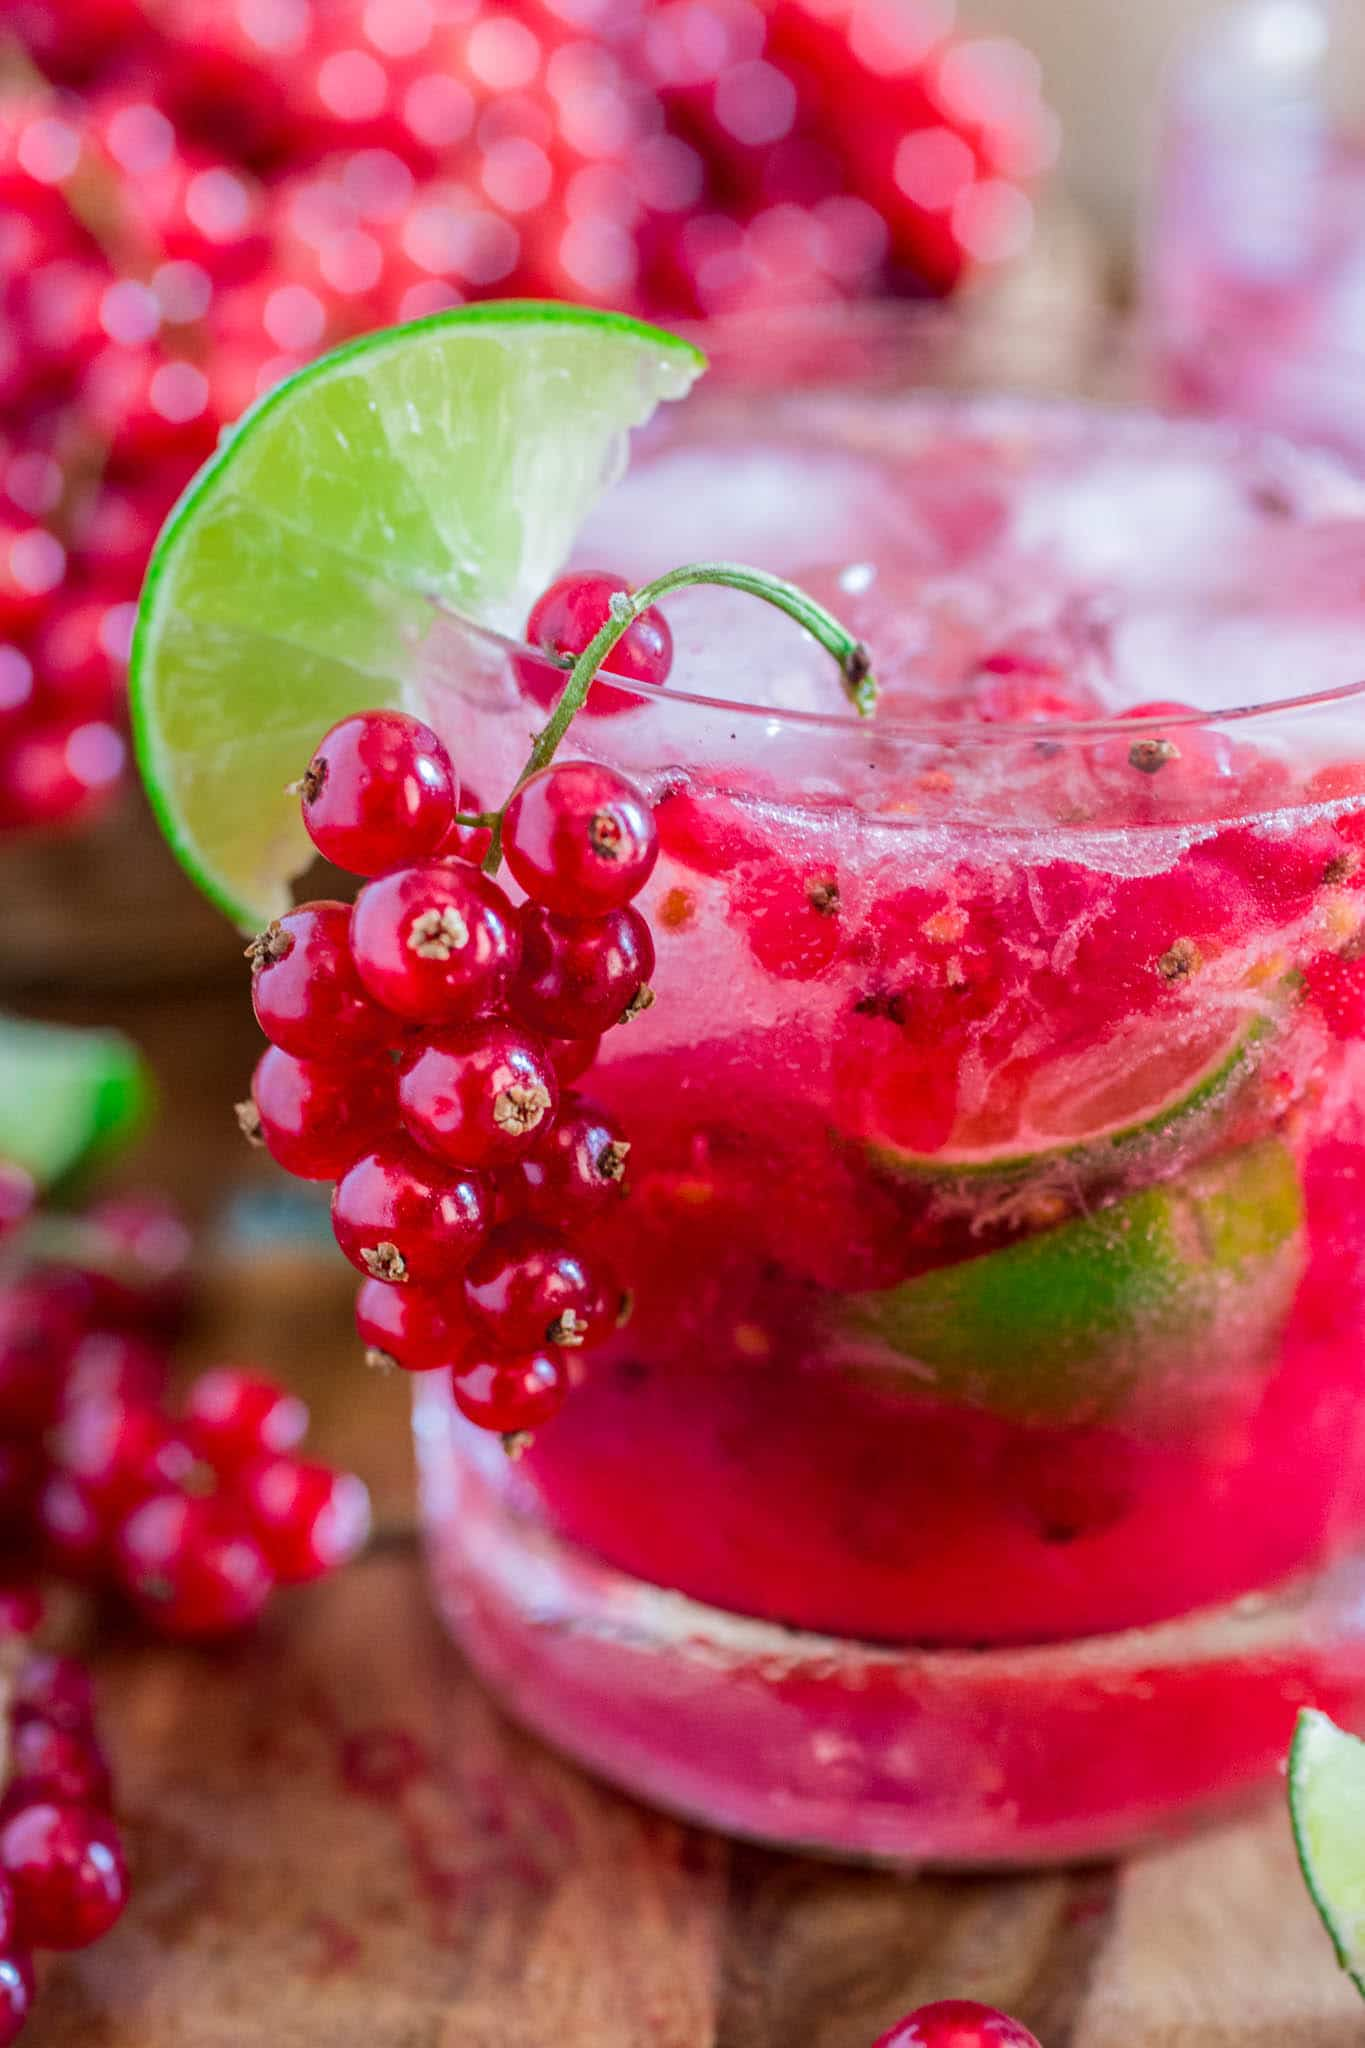 Red Currant Caipirinha | www.oliviascuisine.com | This red currant twist on a classic lime Caipirinha might be my new favorite summertime cocktail! Sour, sweet and as strong as you can take it. There's really no better way to beat the heat! (Sponsored by HBF International.)